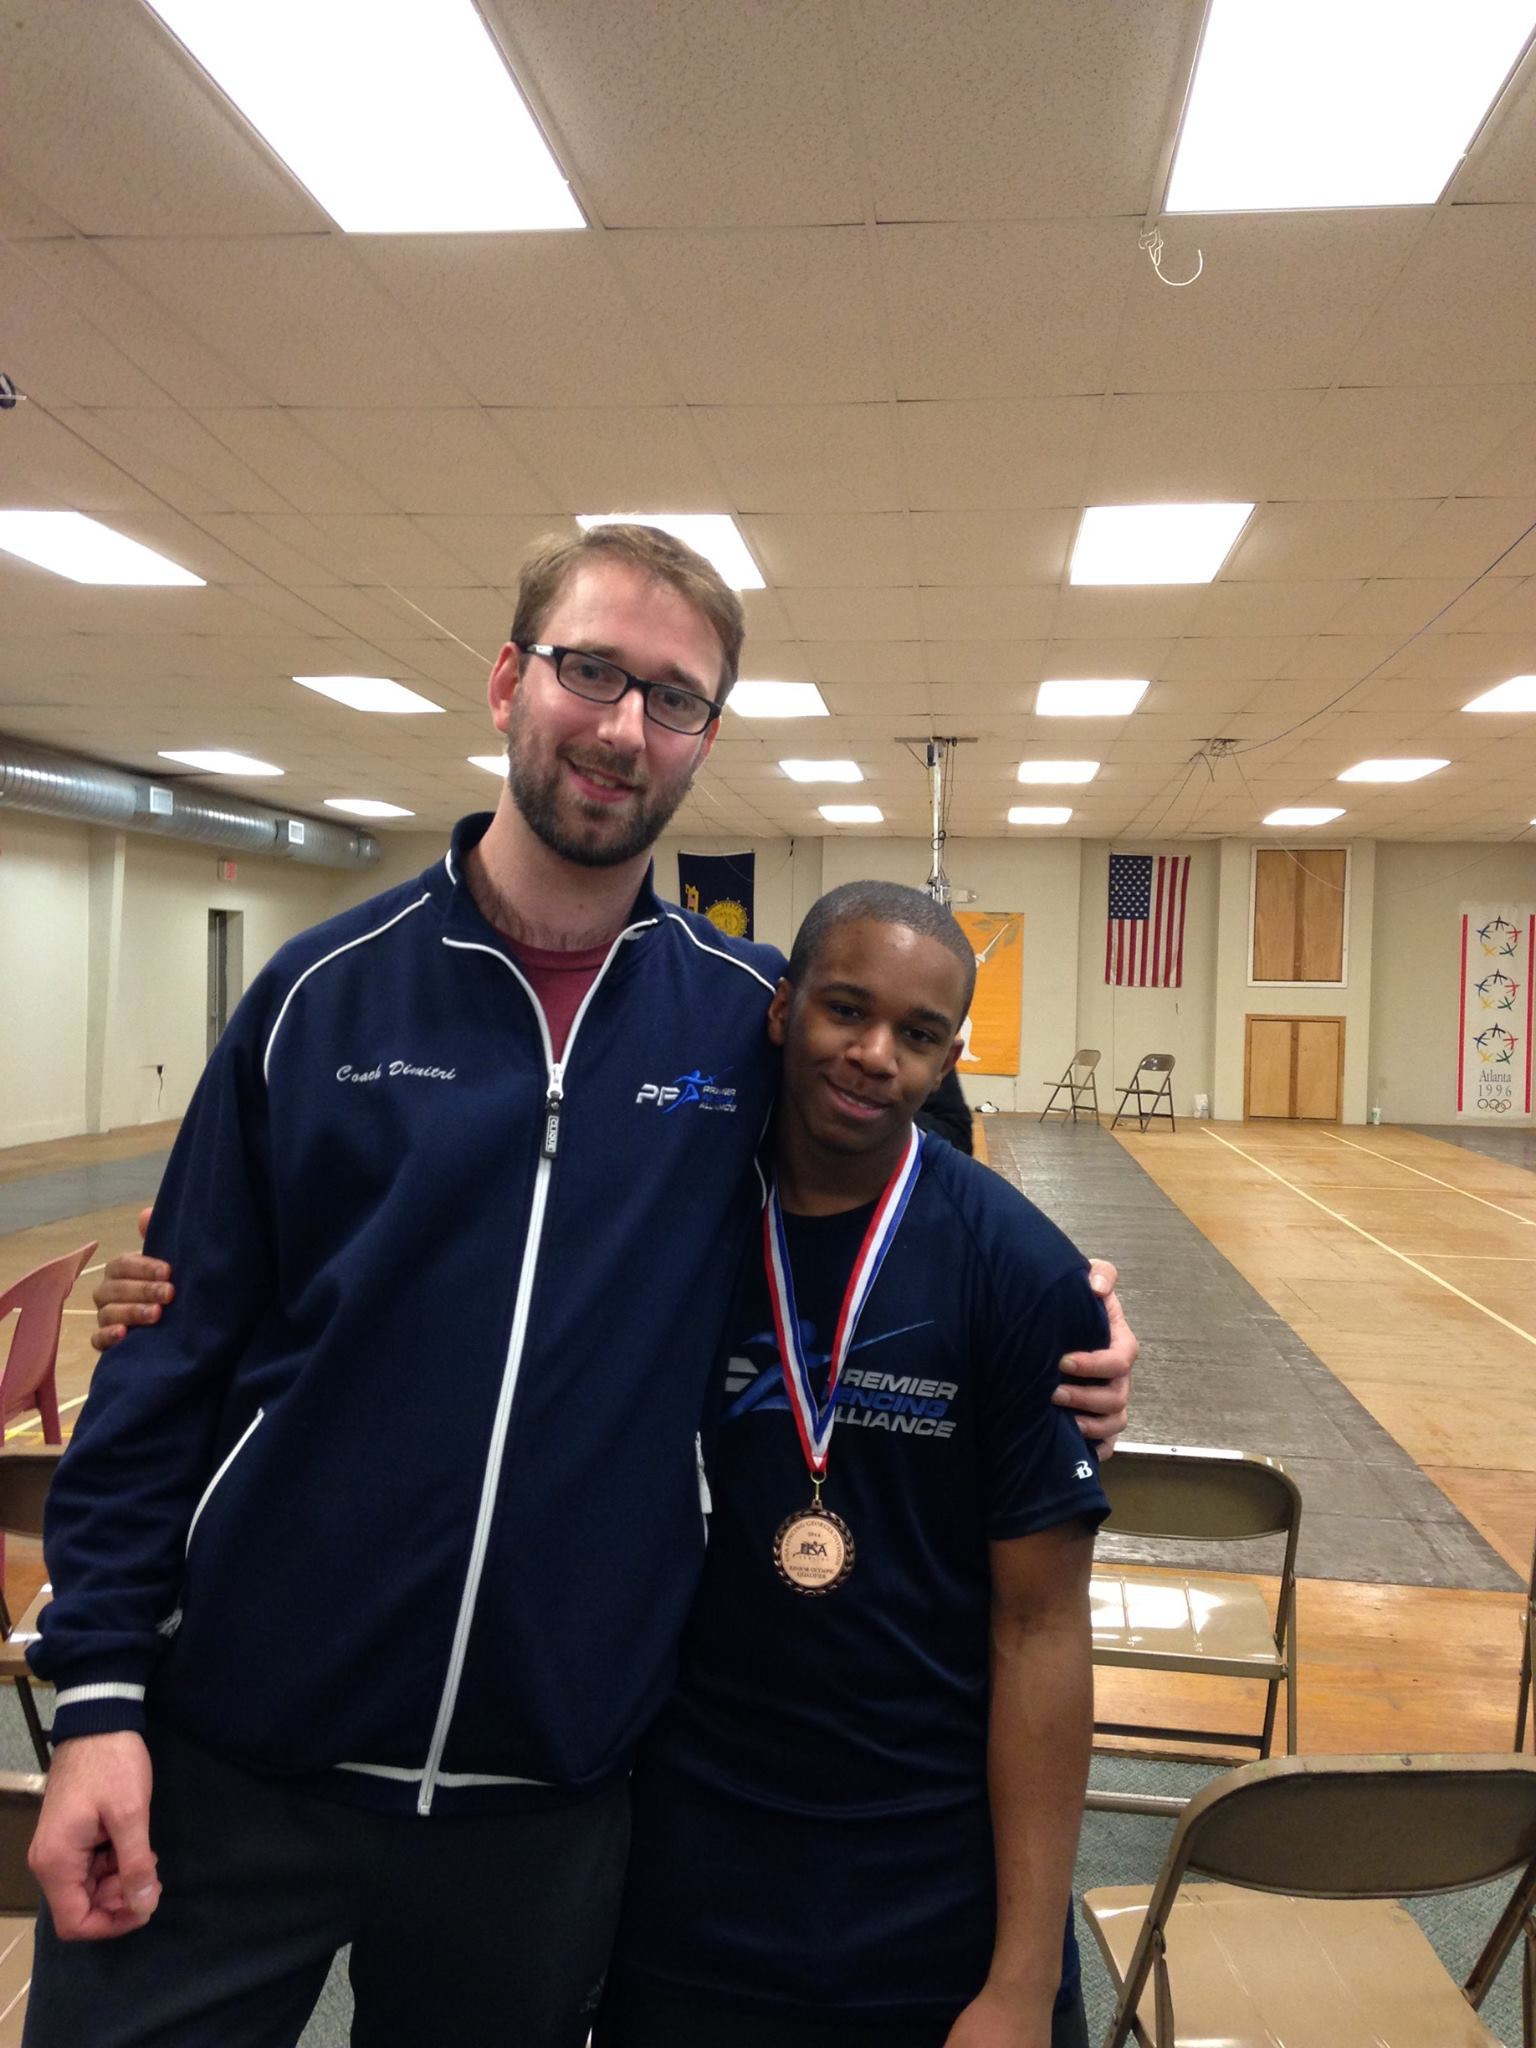 Local Fencing Club S Student Wins Top Honors In Regional